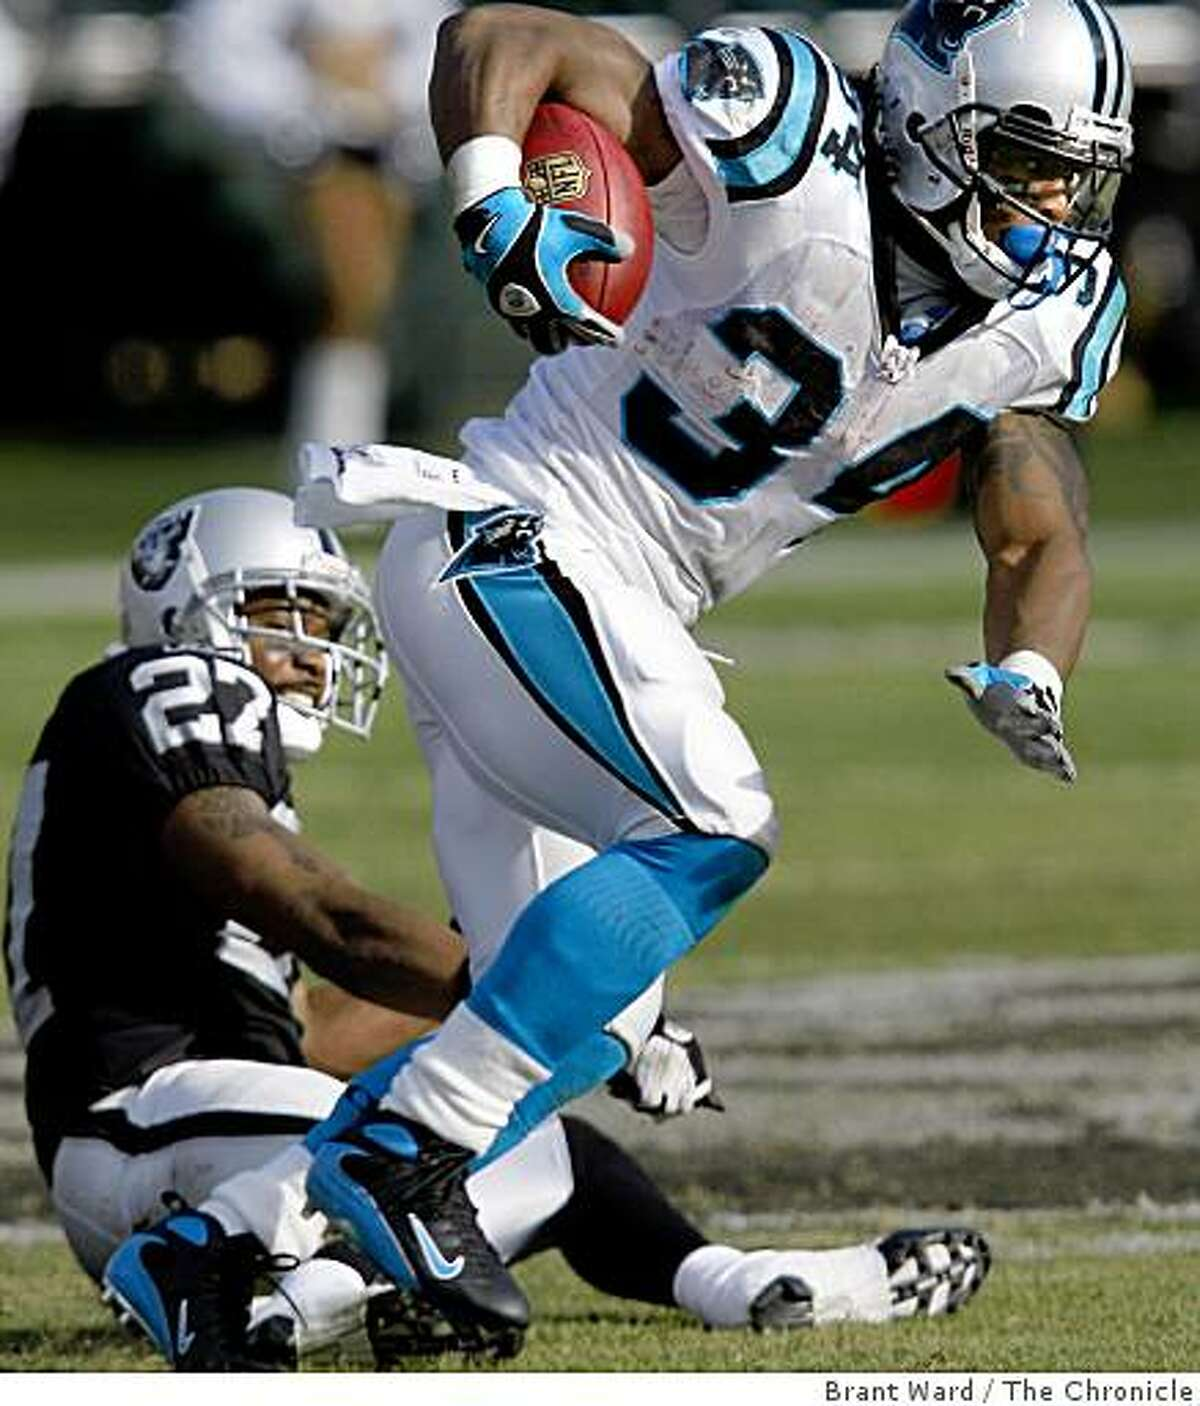 The Panthers DeAngelo Williams broke a tackle by Rashad Baker late in the first half and went for a touchdown. Oakland Raiders vs Carolina Panthers Sunday November 9, 2008 The Raiders lost 17-6.